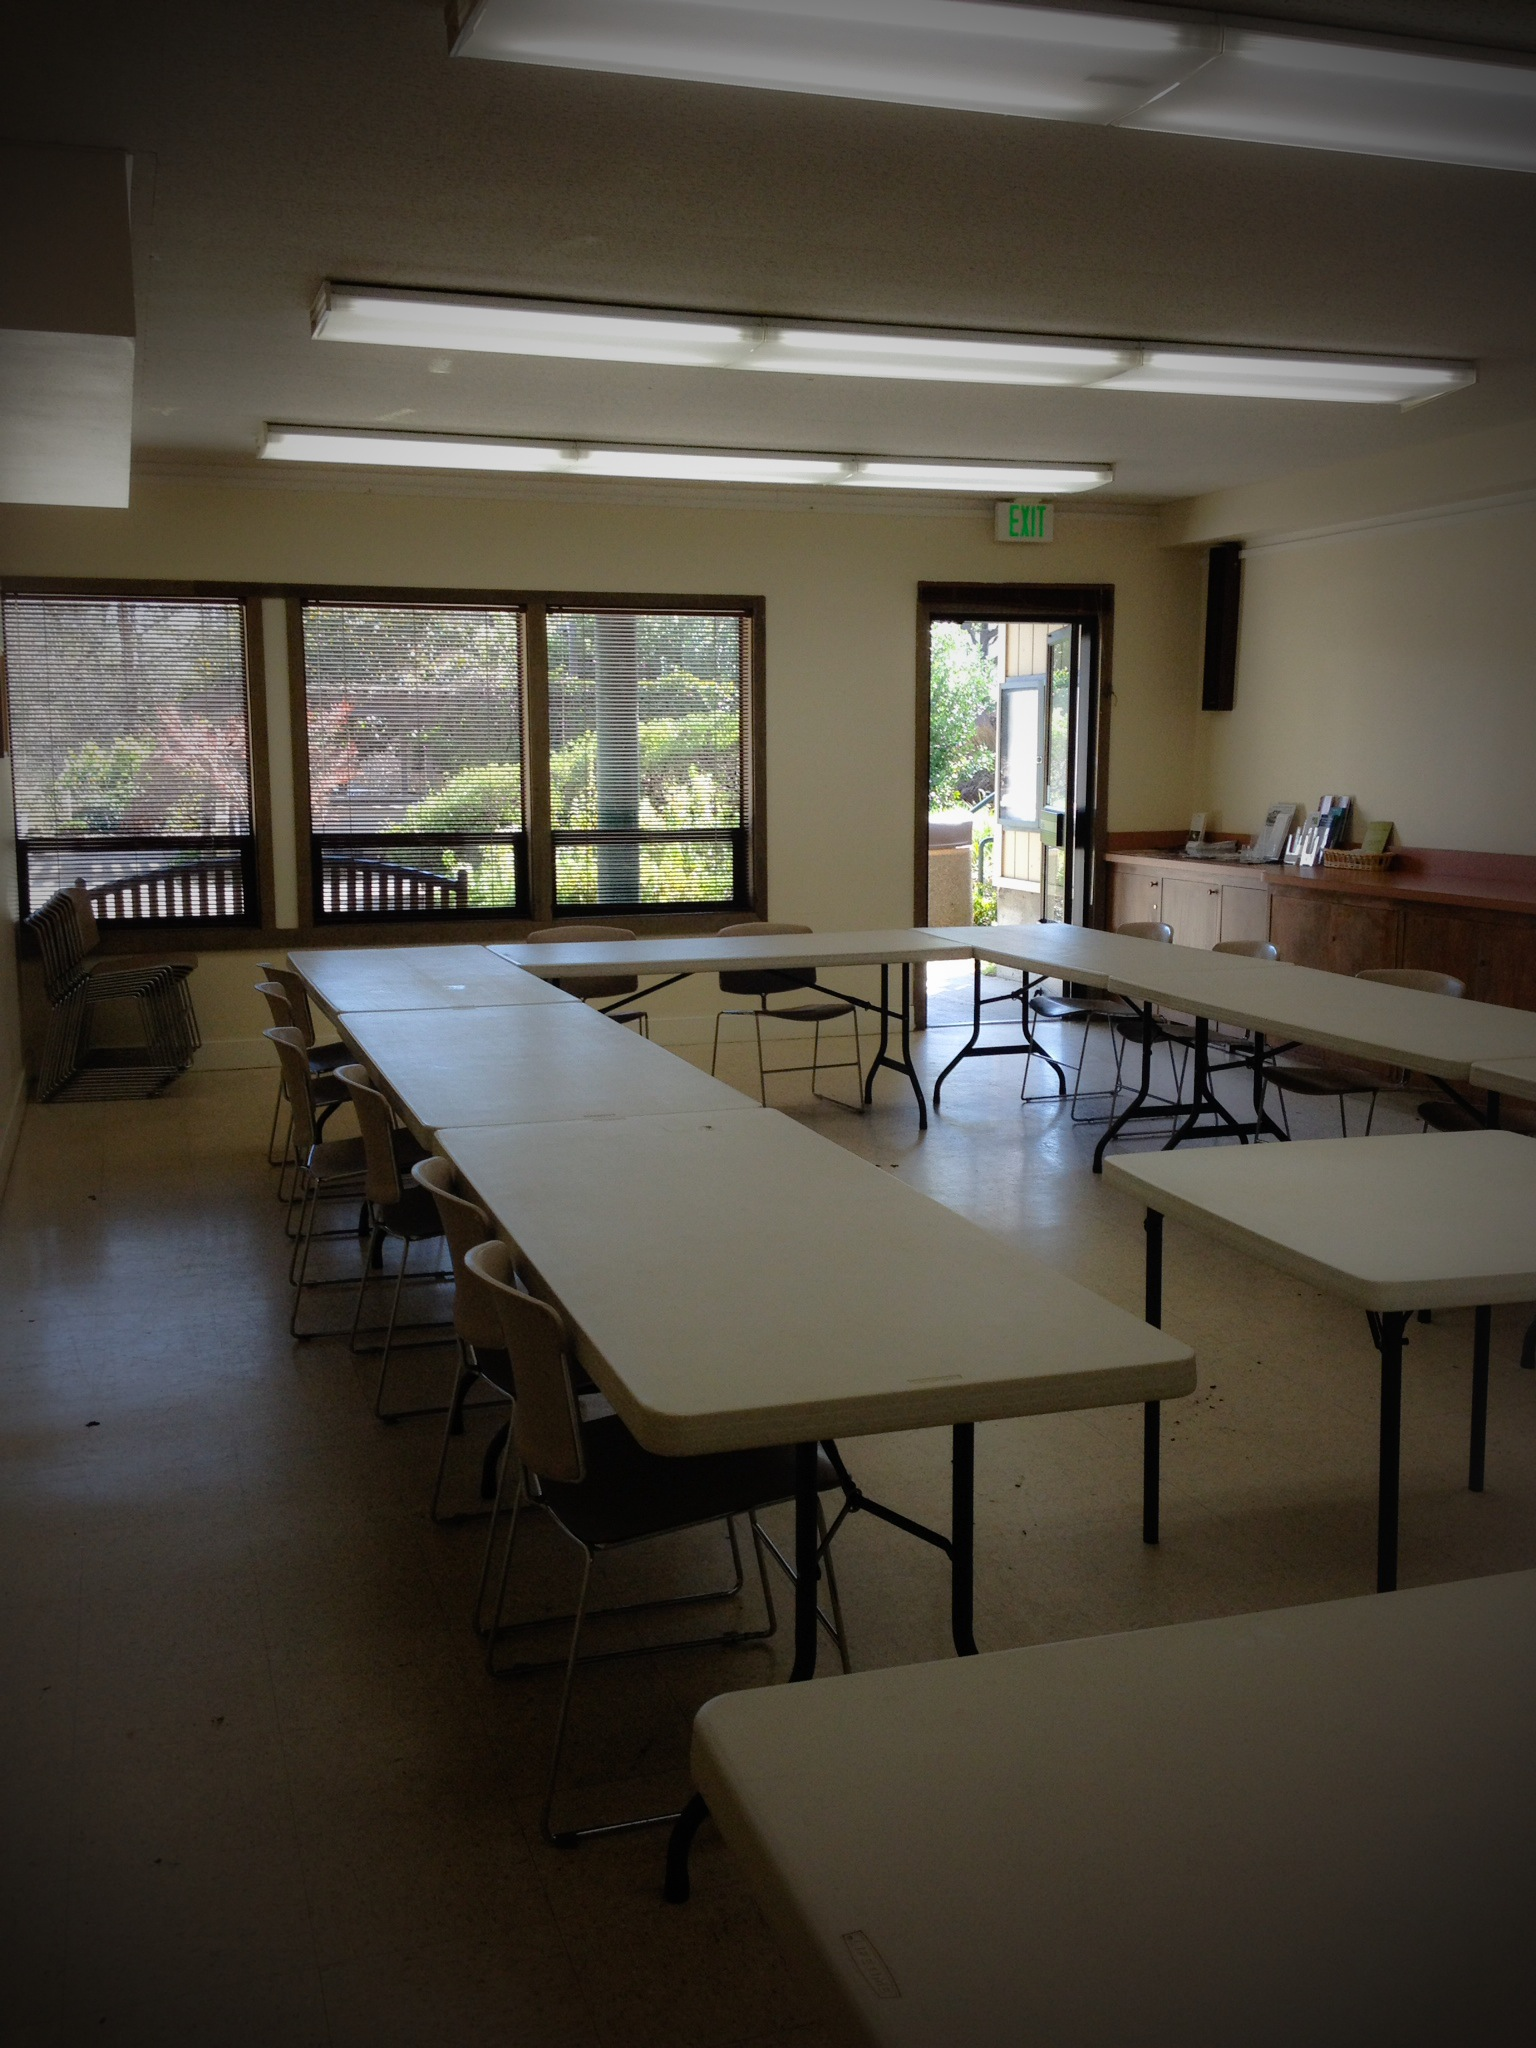 The Rotary Room is often used for small business meetings, training workshops and staff retreats.